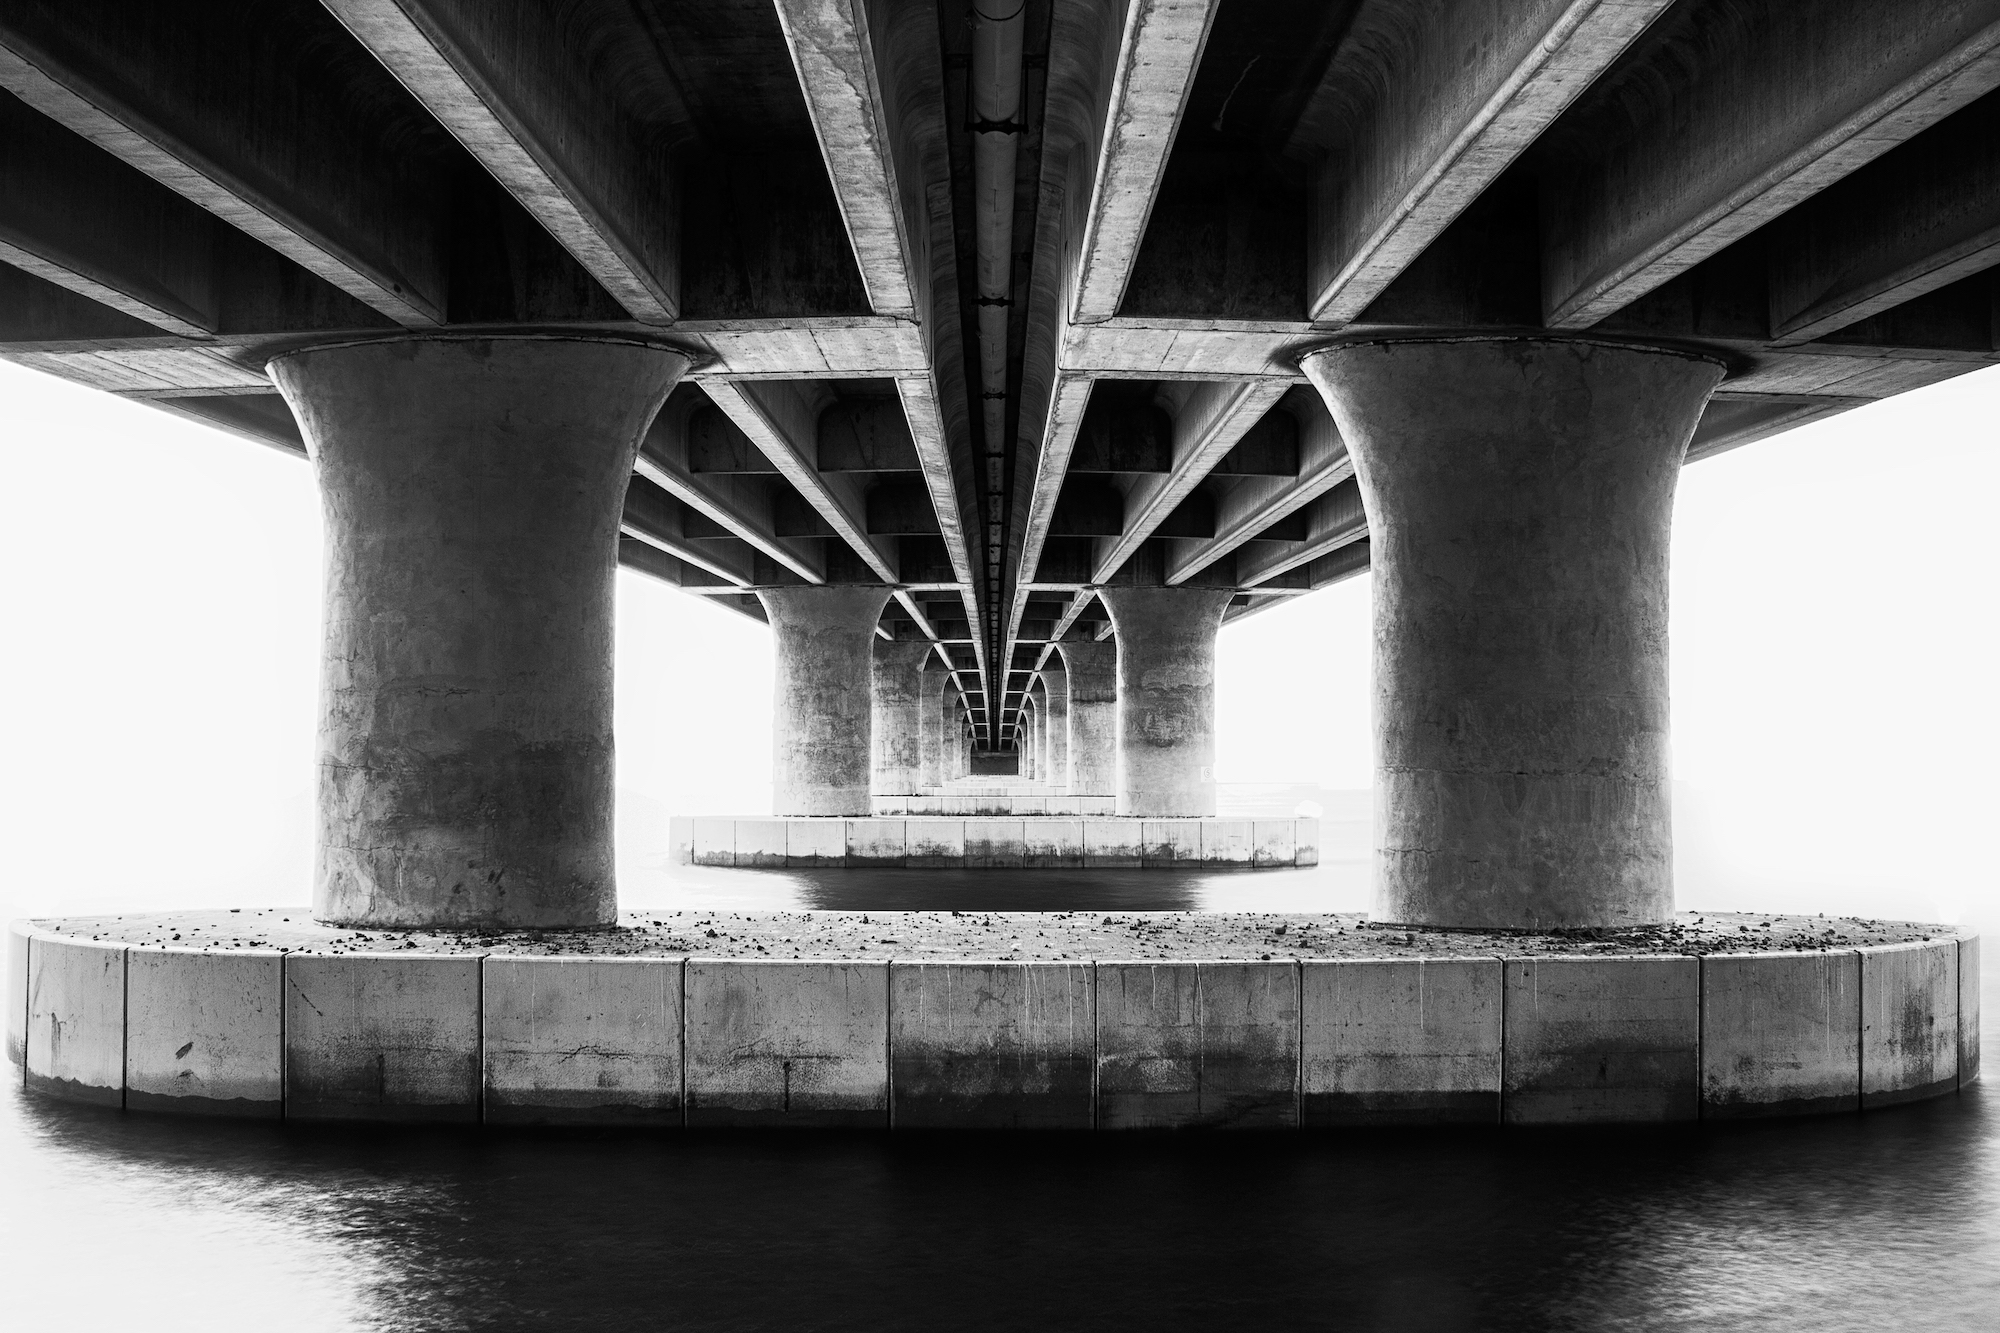 Concrete convergence photographed from underneath a bridge